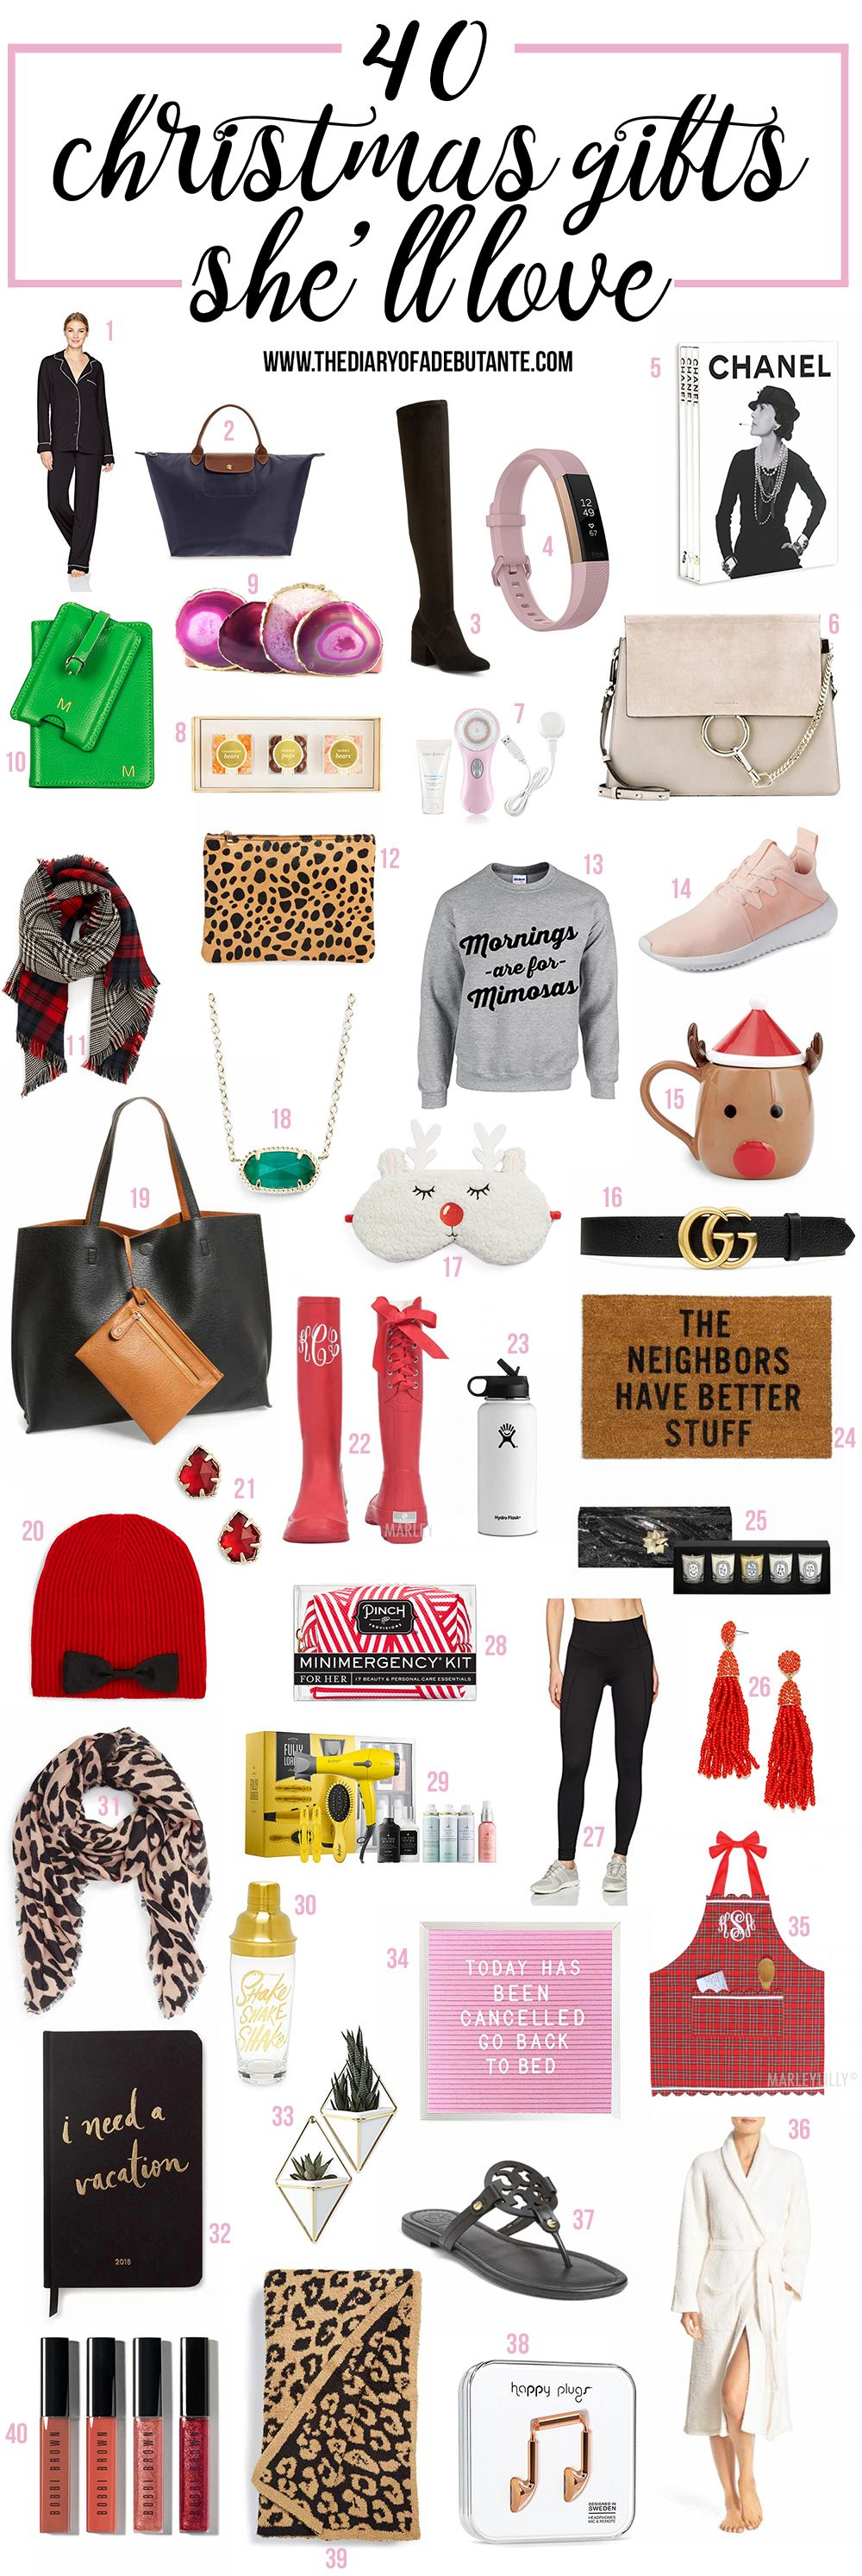 Cool Gift Ideas for Girlfriend, Mom, or BFF this Holiday